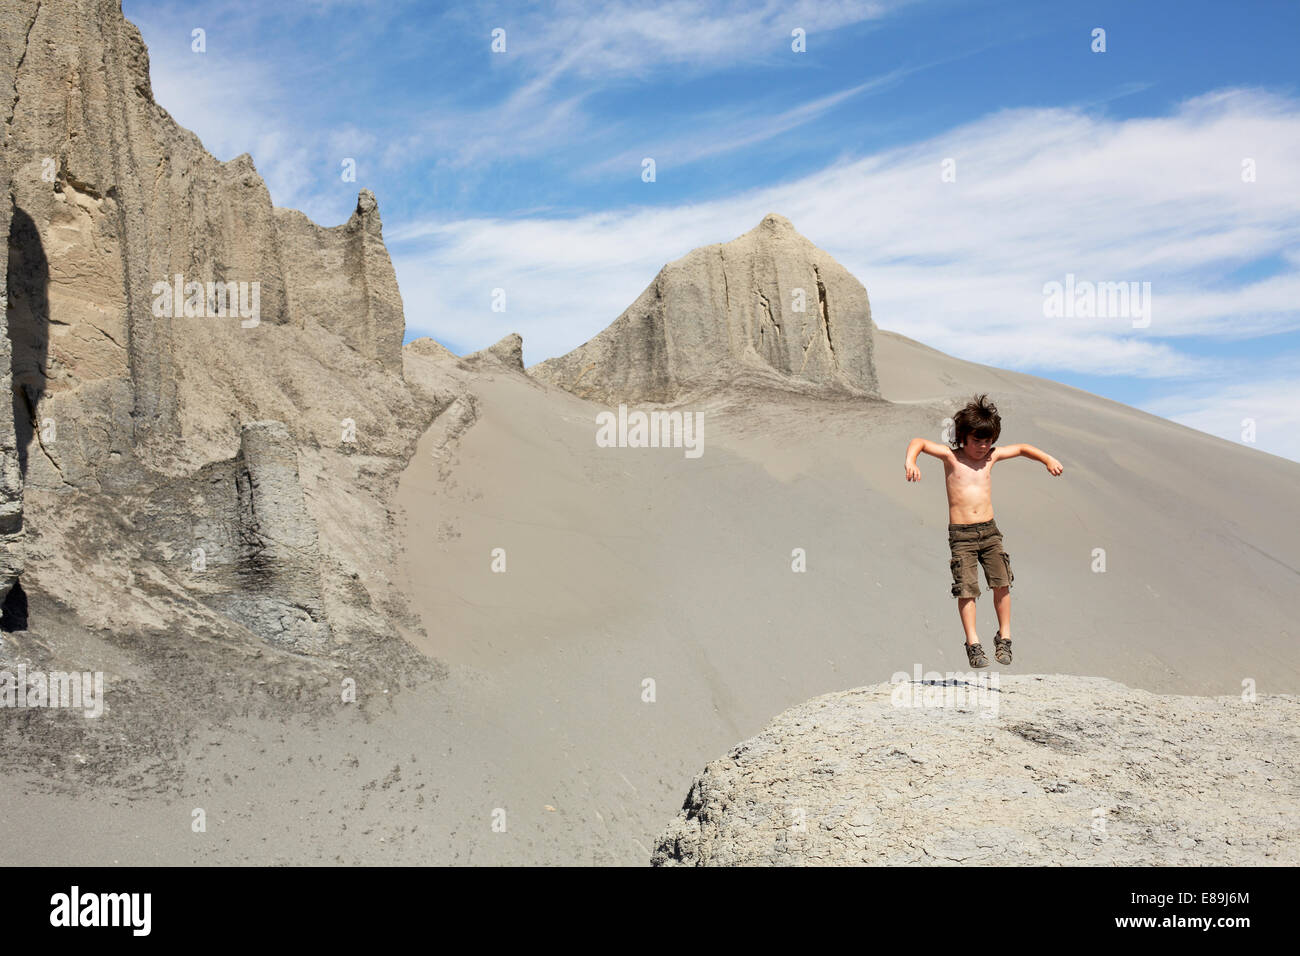 Boy jumping on sand dunes - Stock Image